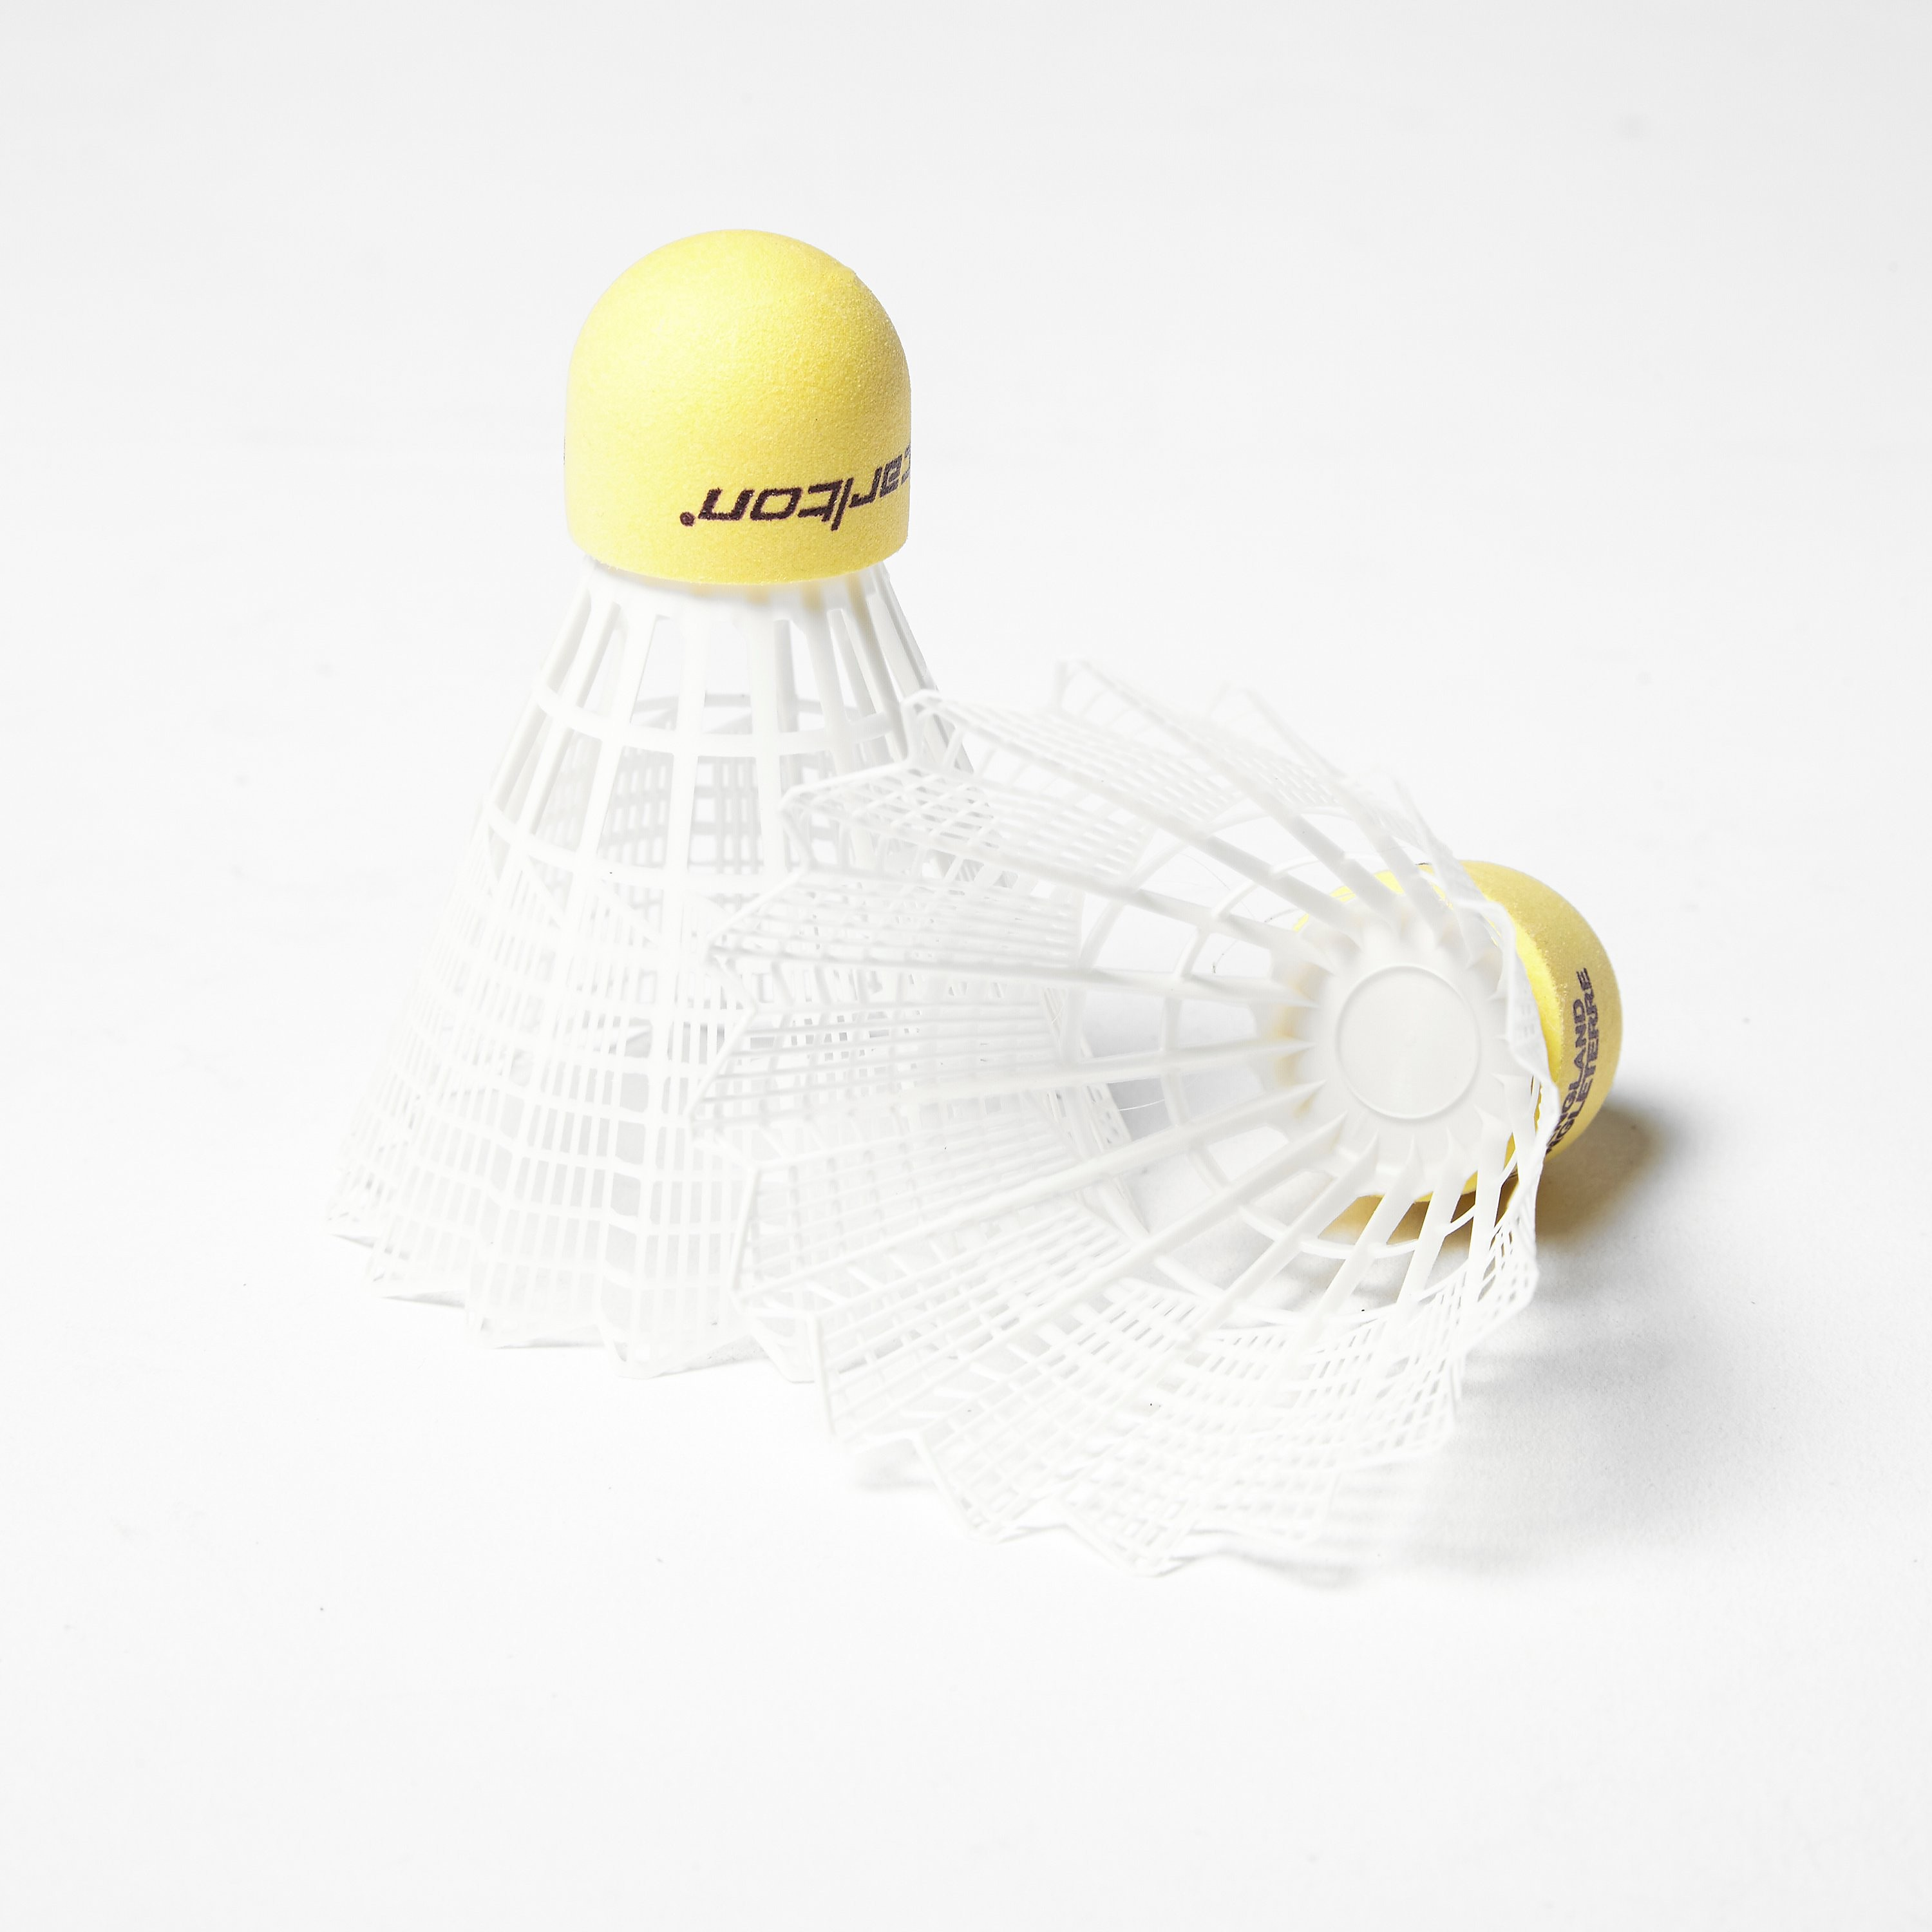 Carlton C100 Badminton Shuttlecocks